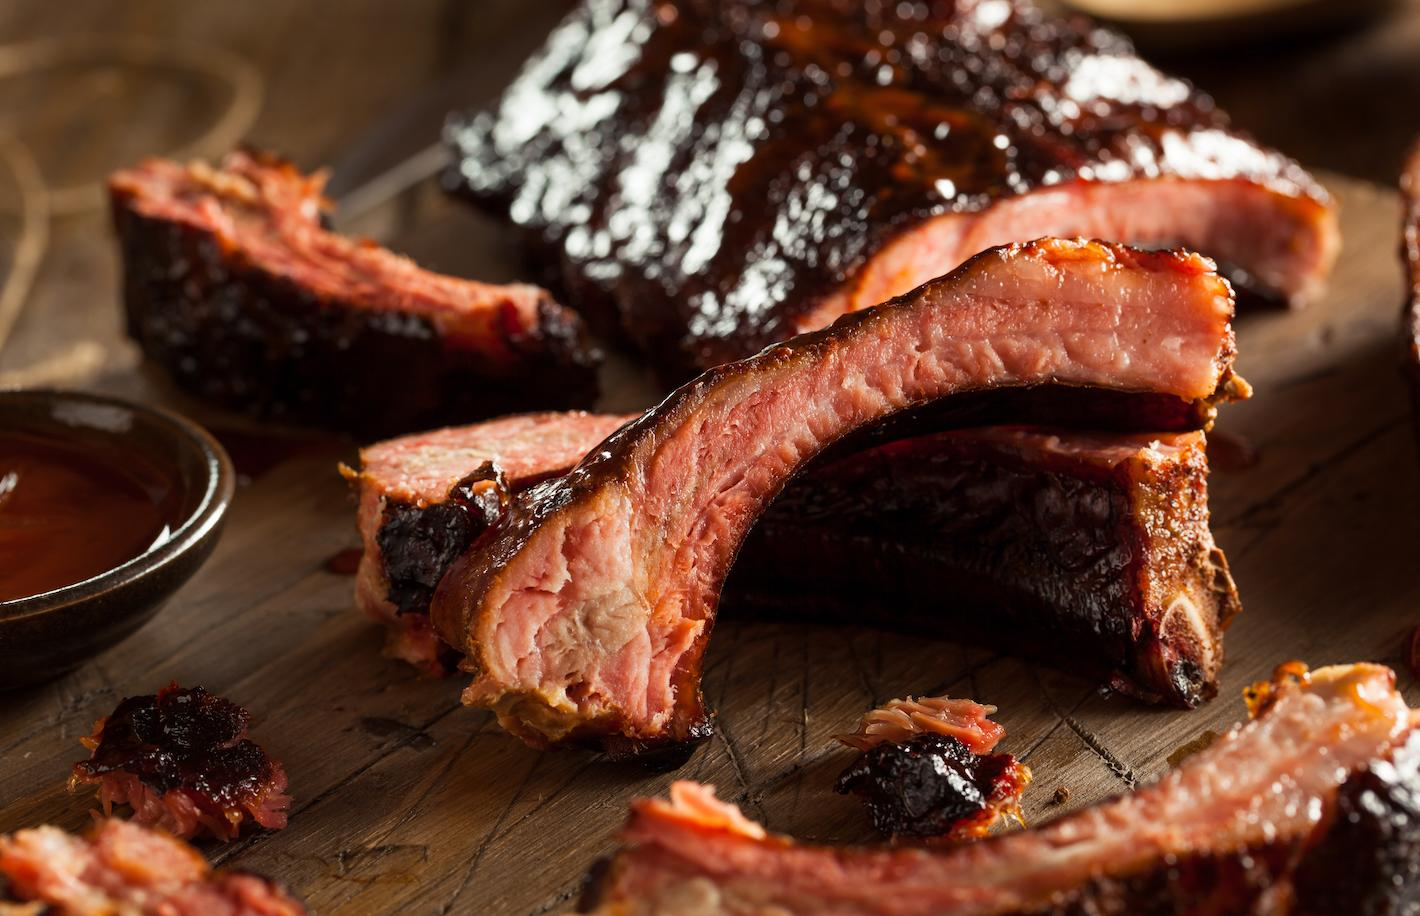 Texas Man's Alleged Use of PPP Funds for Crypto Instead of BBQ Has Feds Asking 'Where's the Beef?'